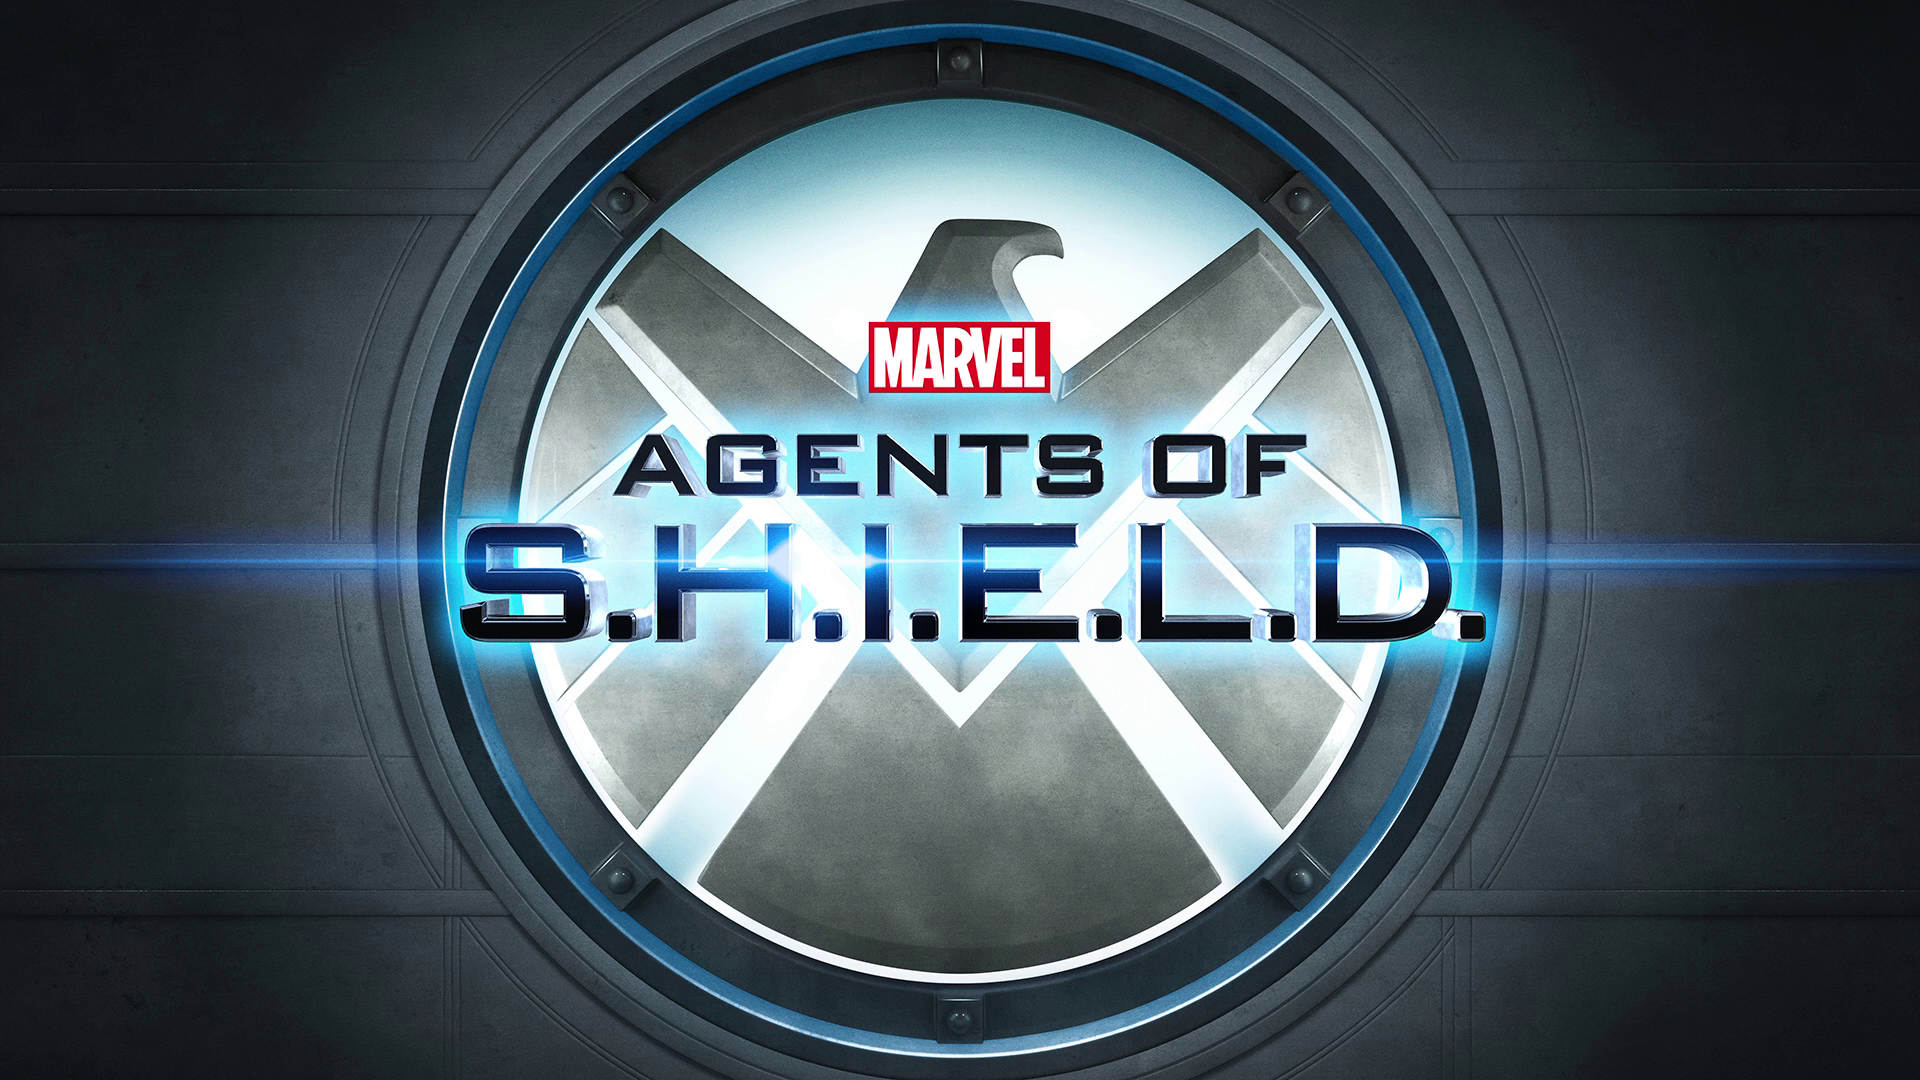 The Gallery For Agents Of Shield Hydra Wallpaper